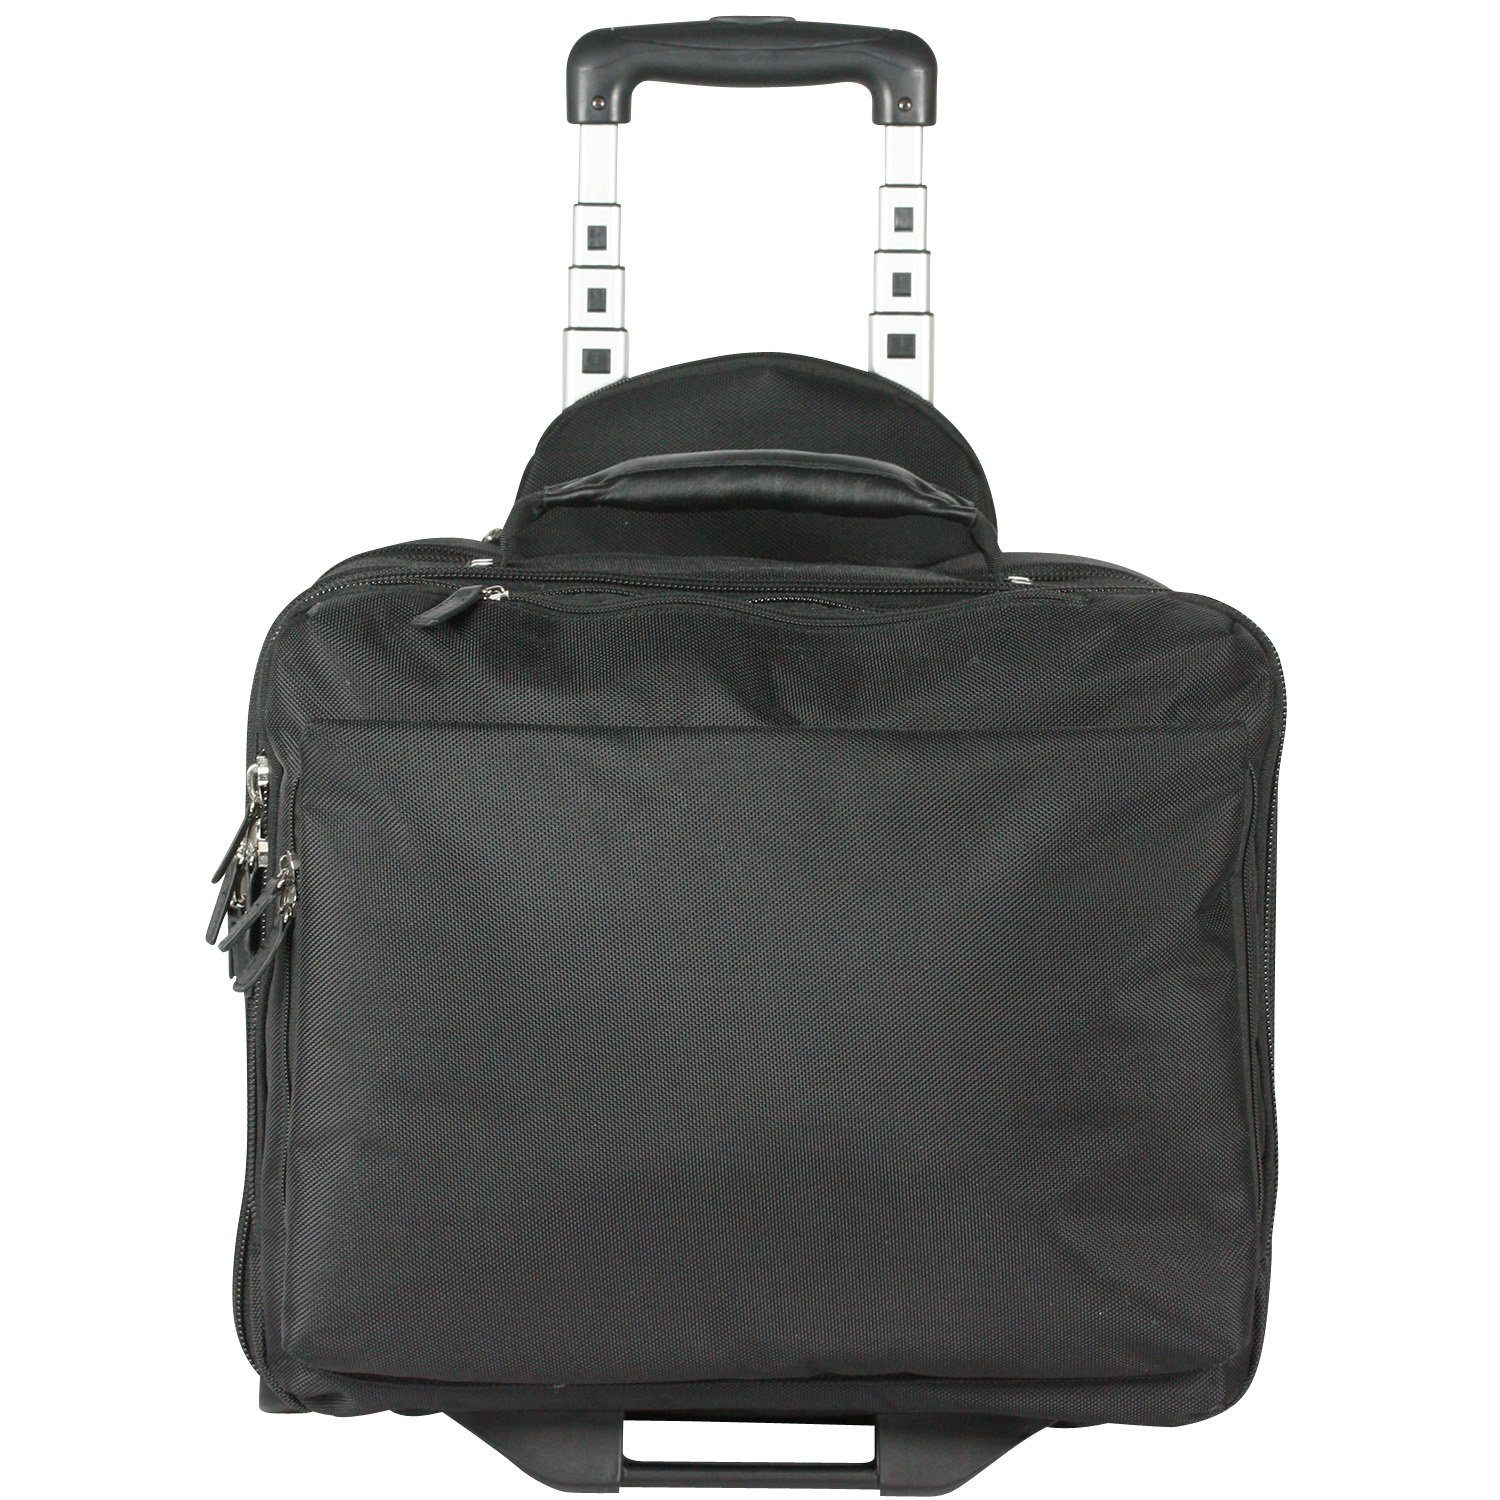 Leonhard Heyden IQ 2-Rollen Businesstrolley 2-Rollen L 46 cm Laptopfach